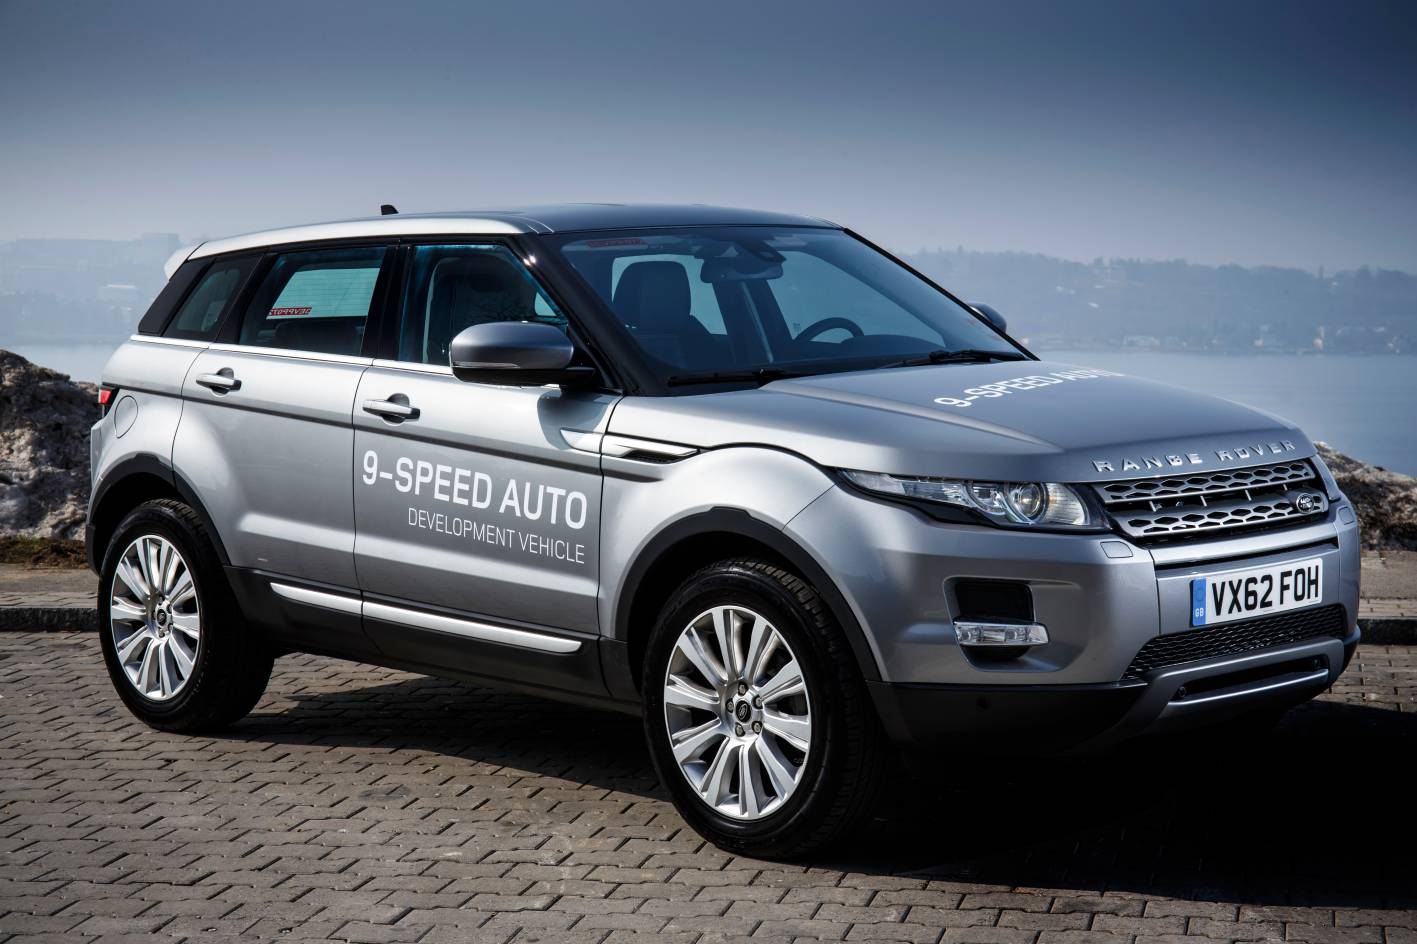 news 2014 range rover evoque 9 speed auto. Black Bedroom Furniture Sets. Home Design Ideas